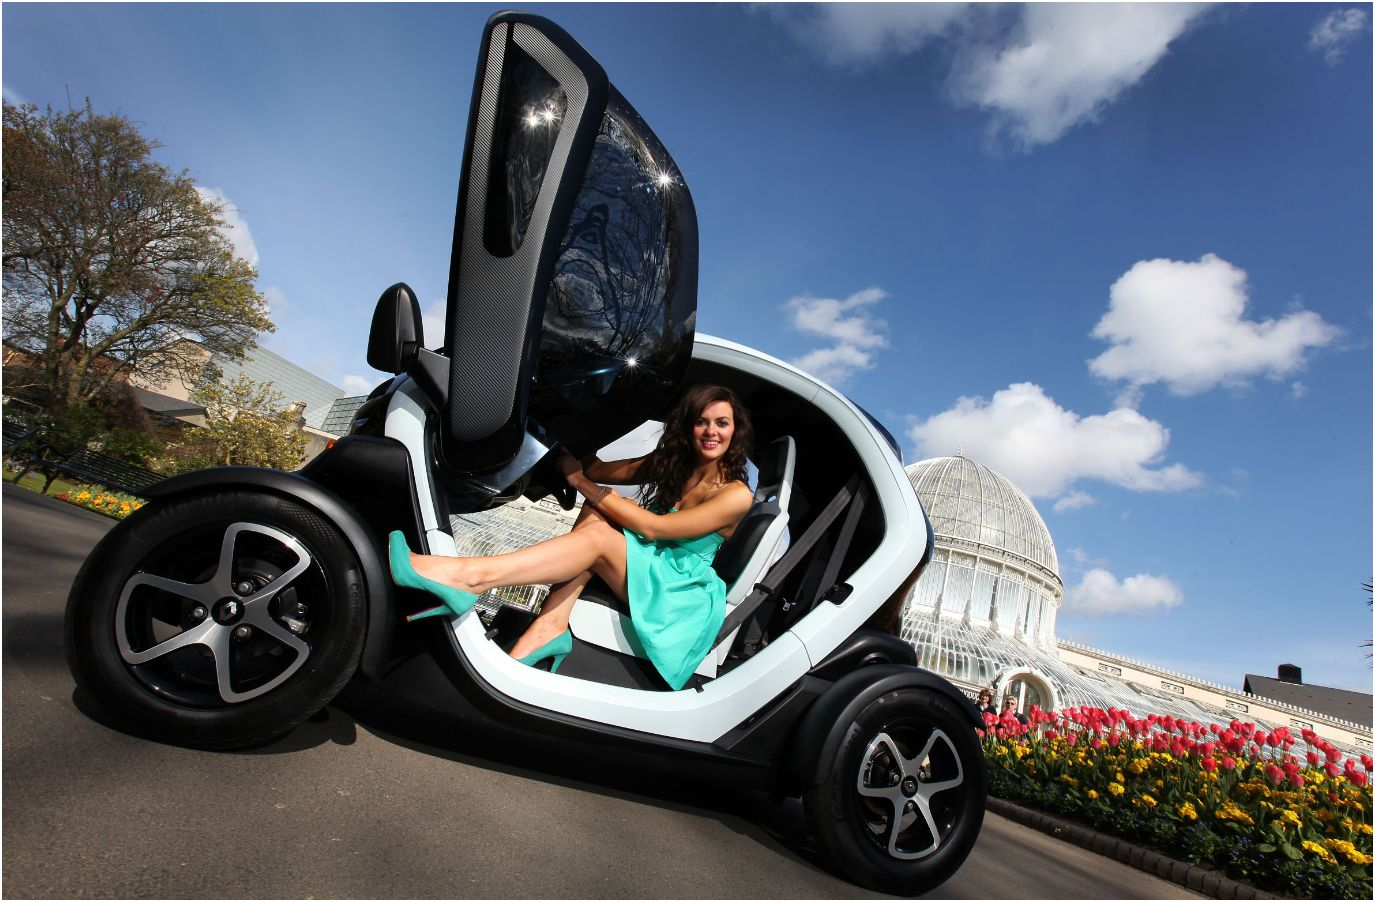 Drive At Age 14: Teens Allowed Tiny Electric Car In Europe | Gadgets,  Science U0026 Technology